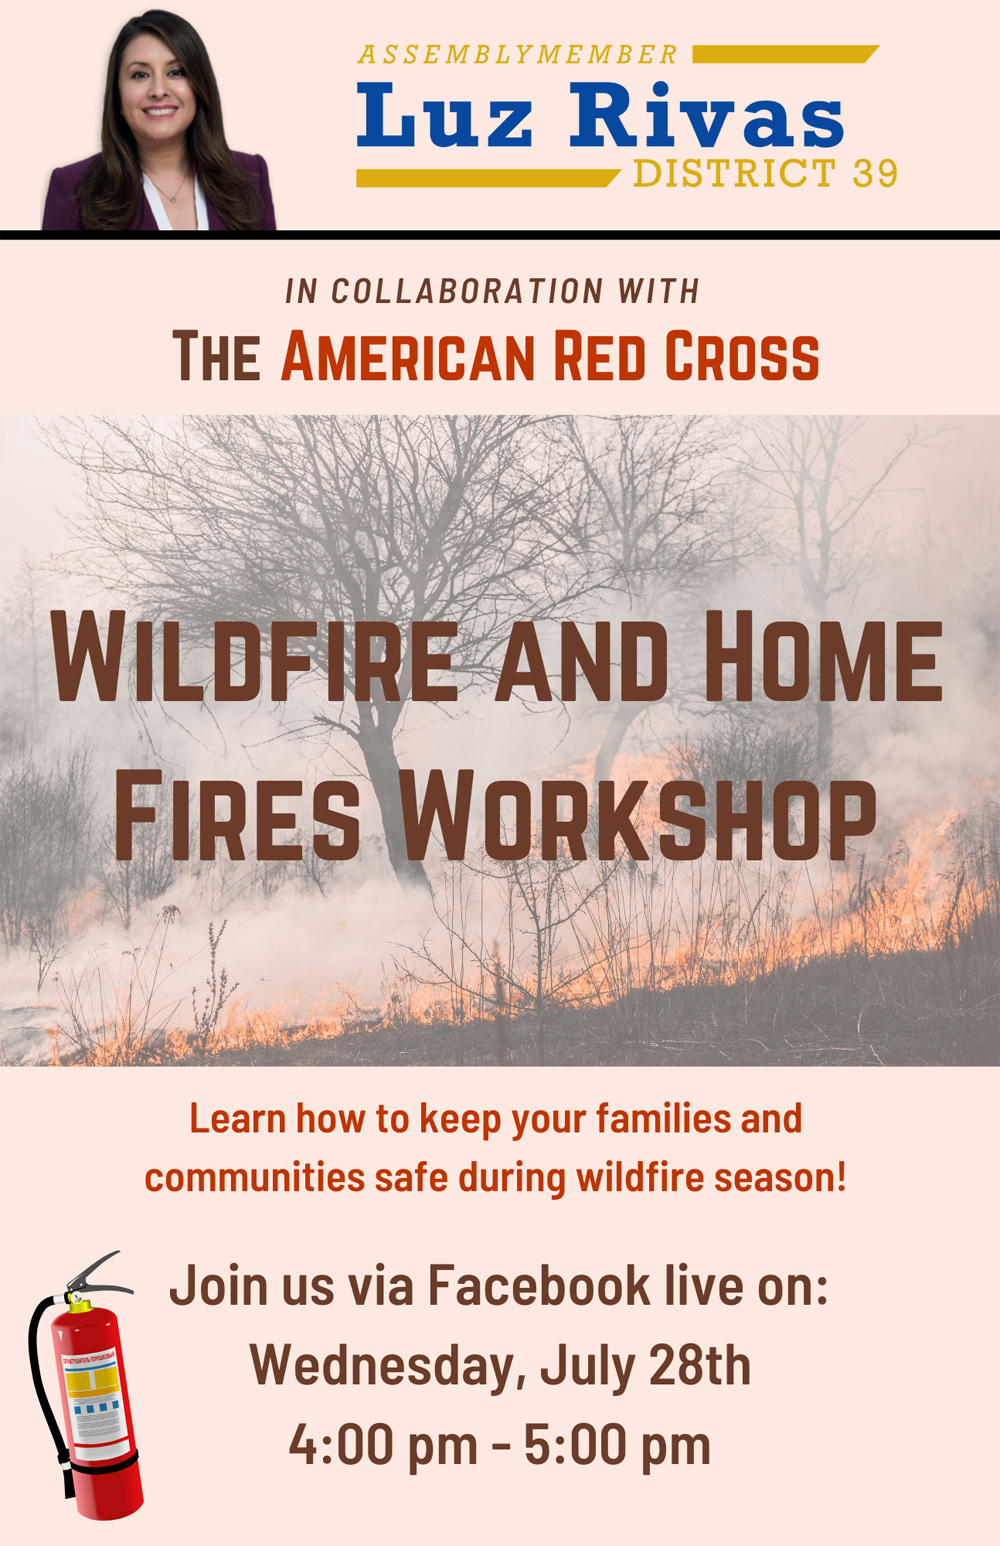 Wildfire and Home Fire Safety Workshop